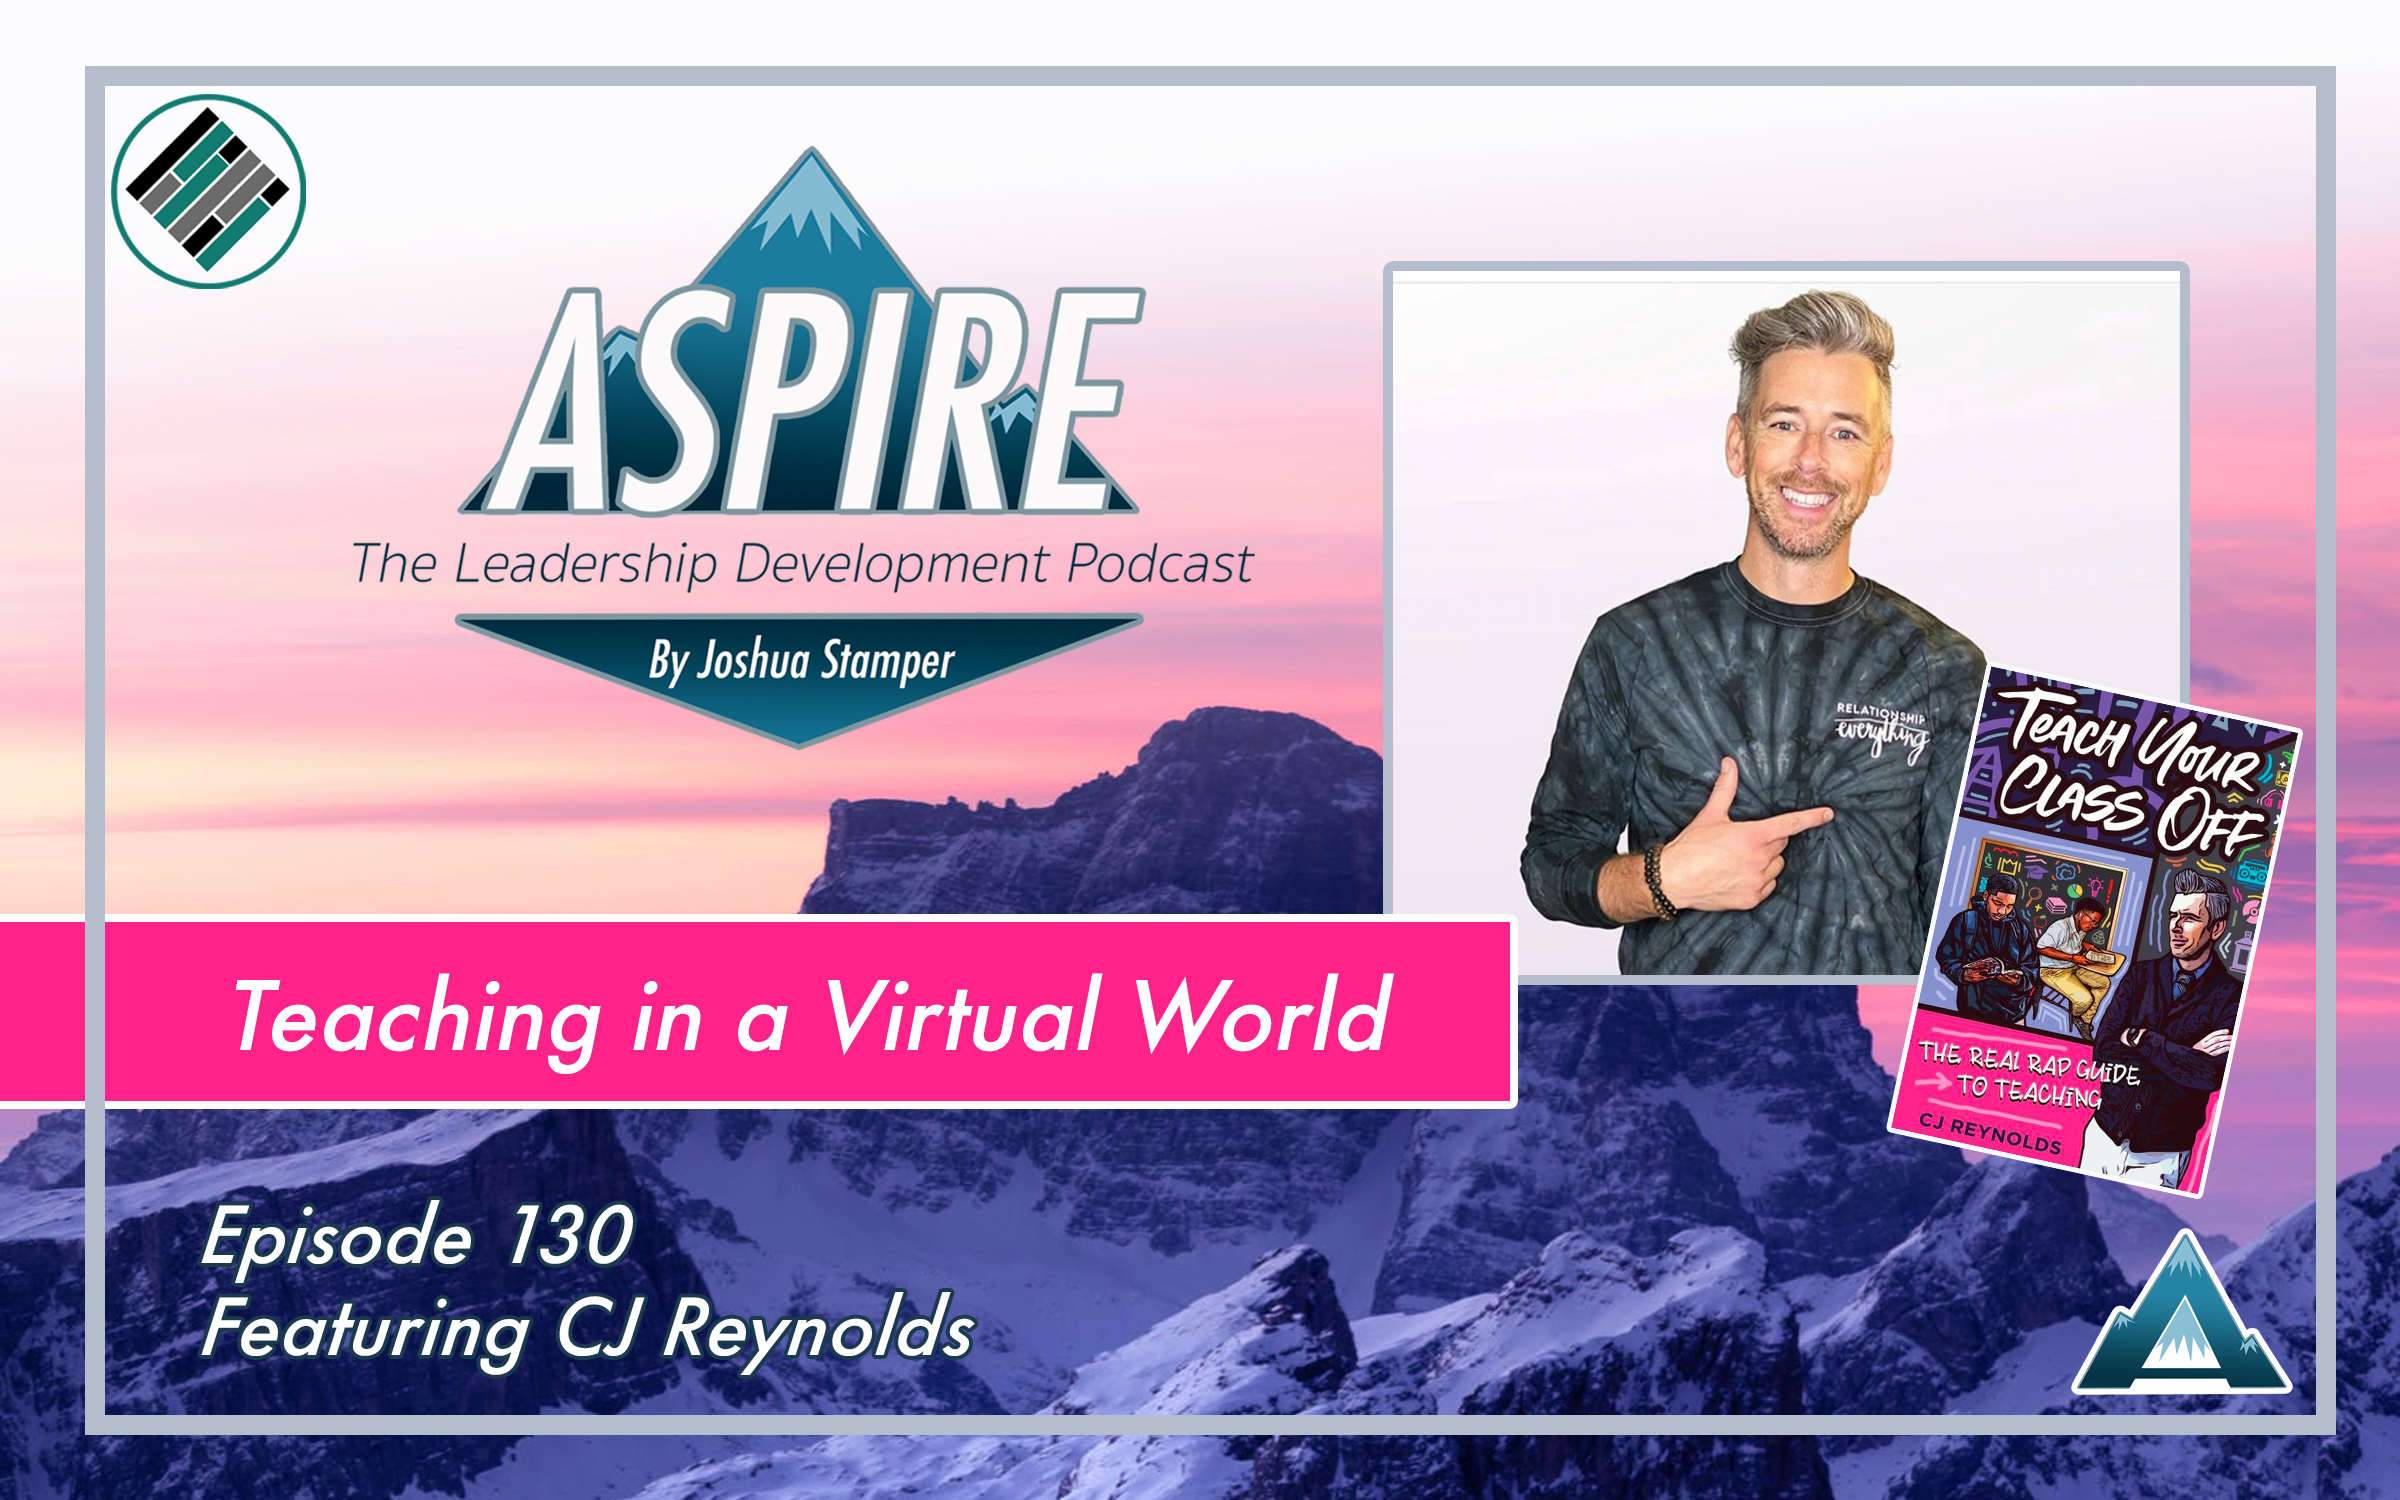 Joshua Stamper, CJ Reynolds, Aspire: The Leadership Development Podcast, Real Rap with Reynolds